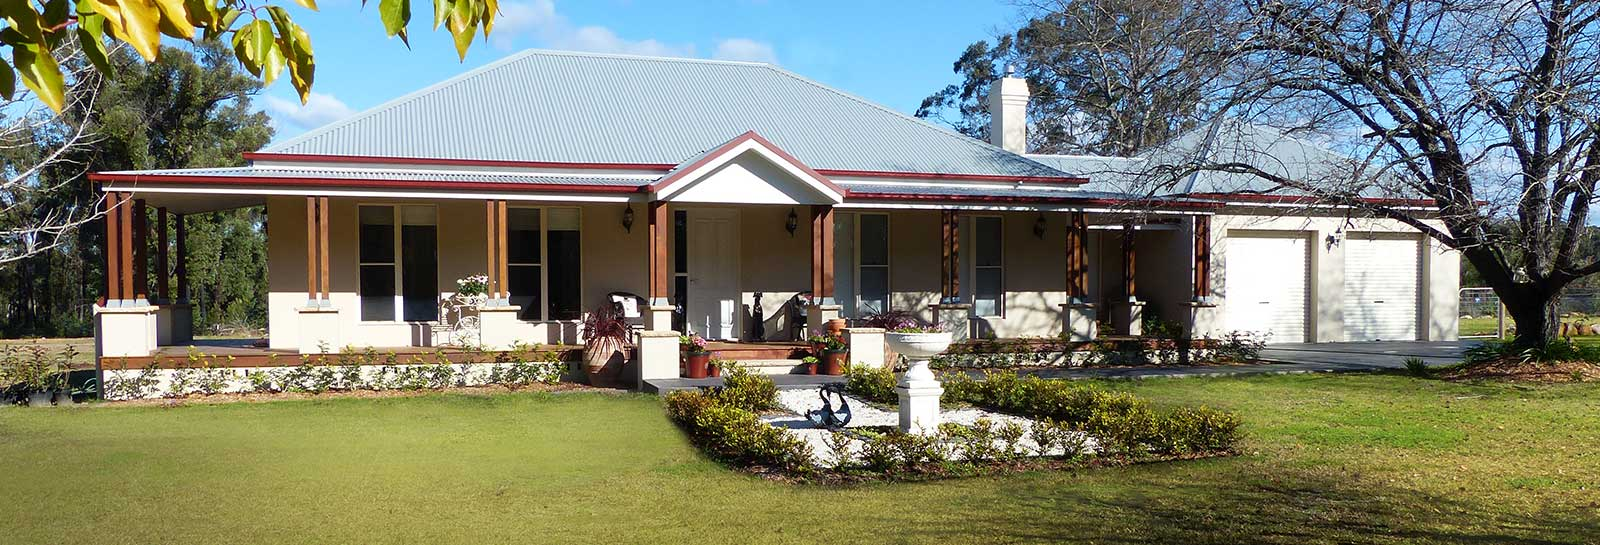 PAAL Kit Homes Steel Frame Homes PAAL Kit Homes Australia